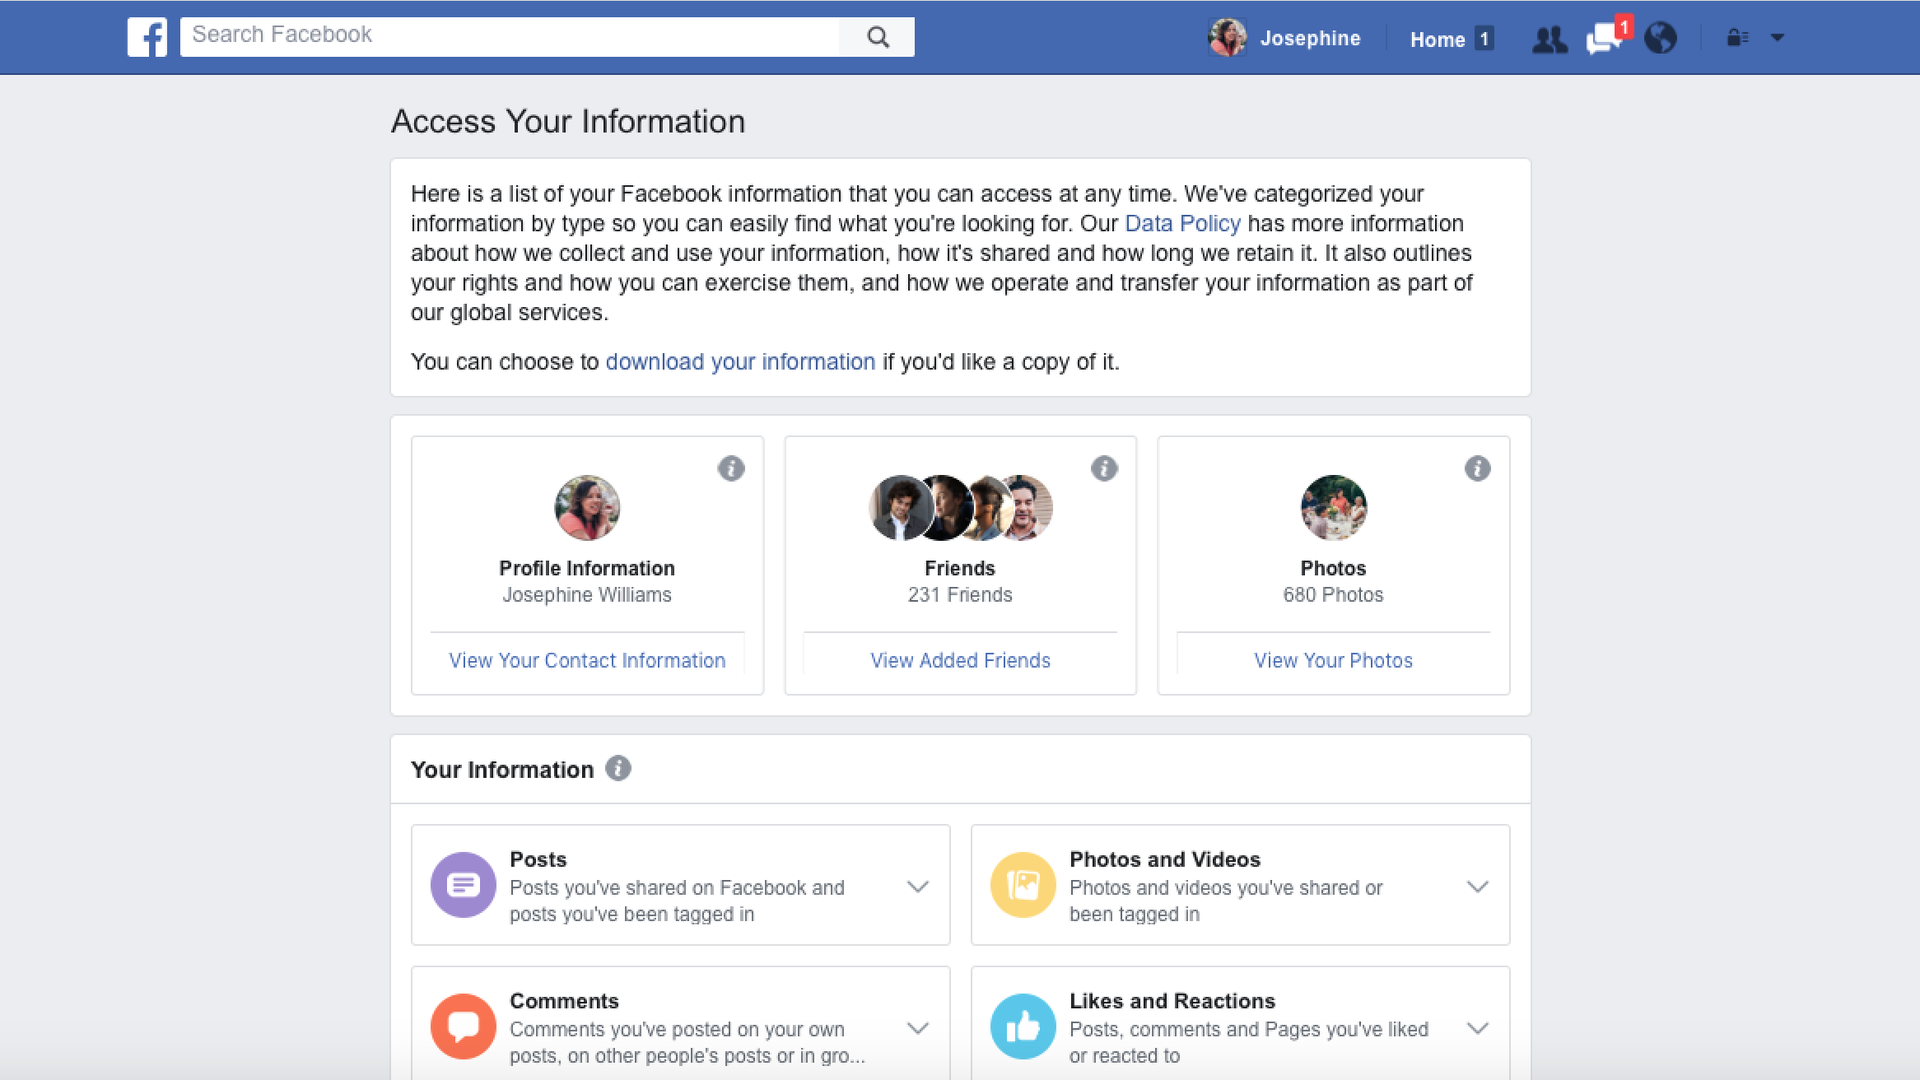 Facebook's new privacy settings offer users a more detailed view of what information it collects